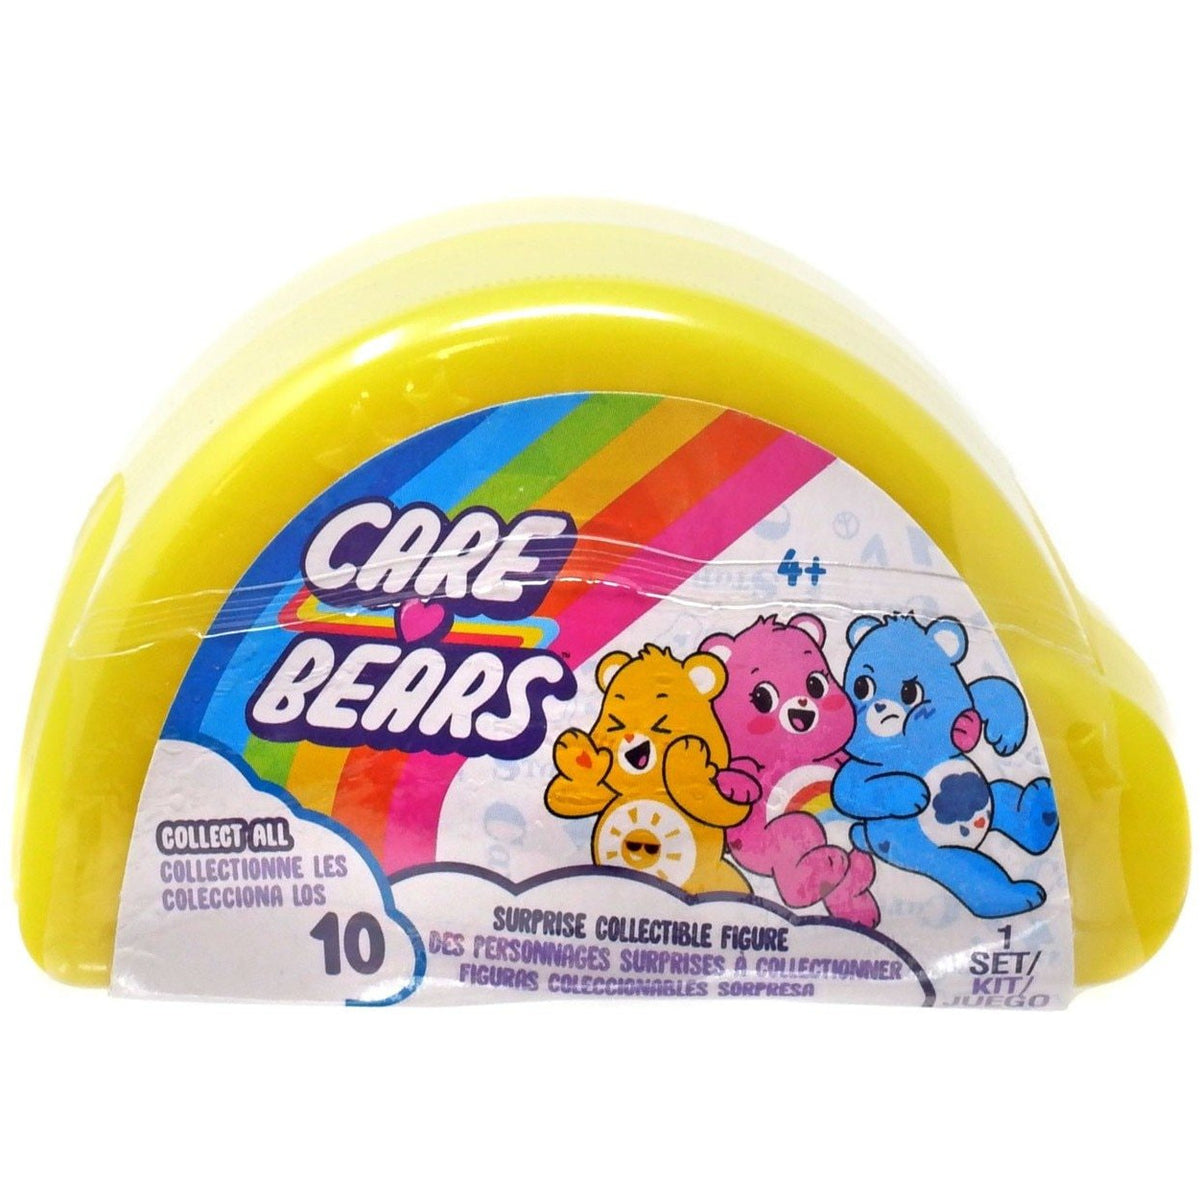 Care Bears Surprise Collectible Figure canada ontario